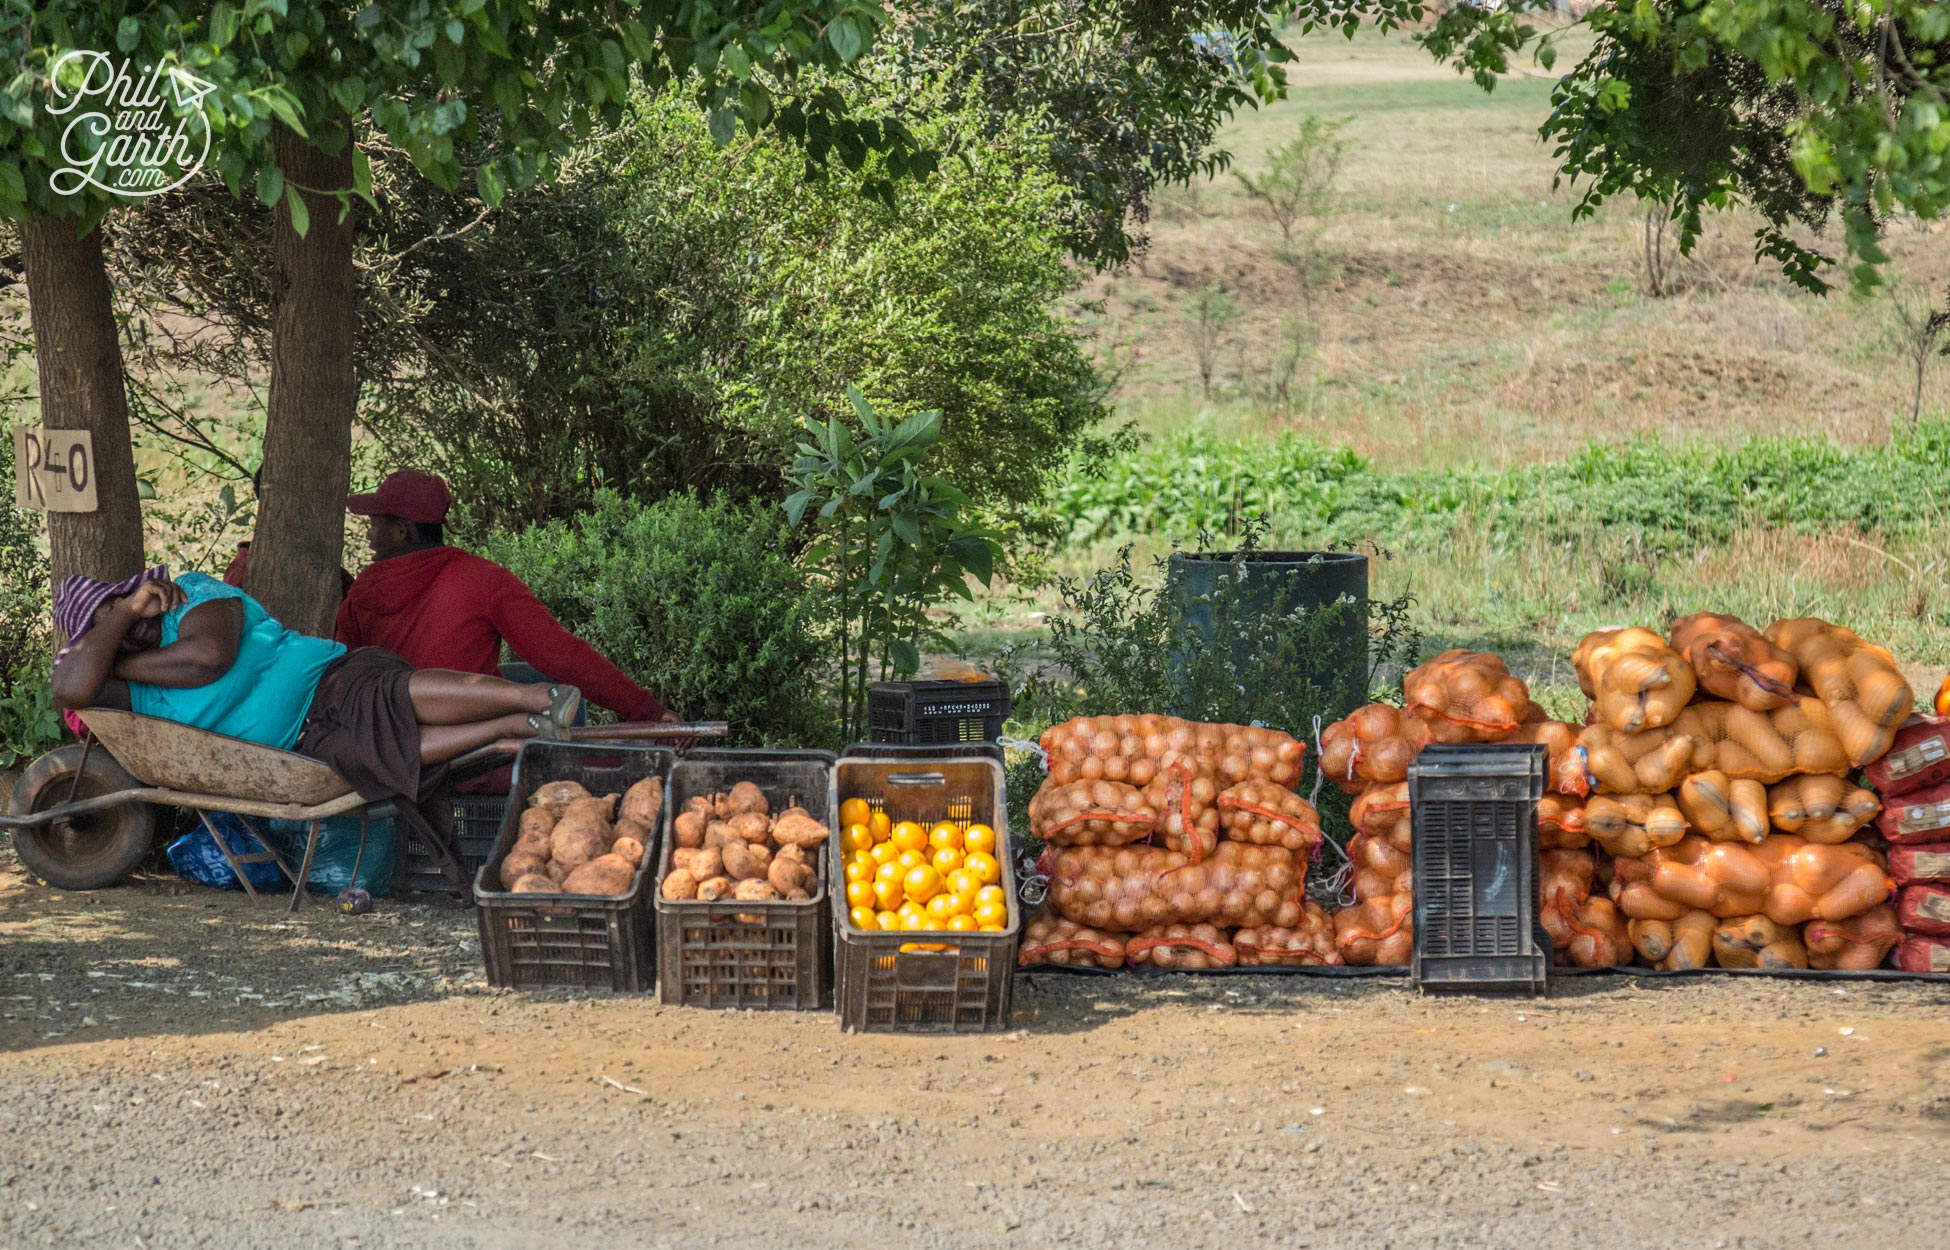 A lady takes time out from selling fruit, veg and macadamia nuts